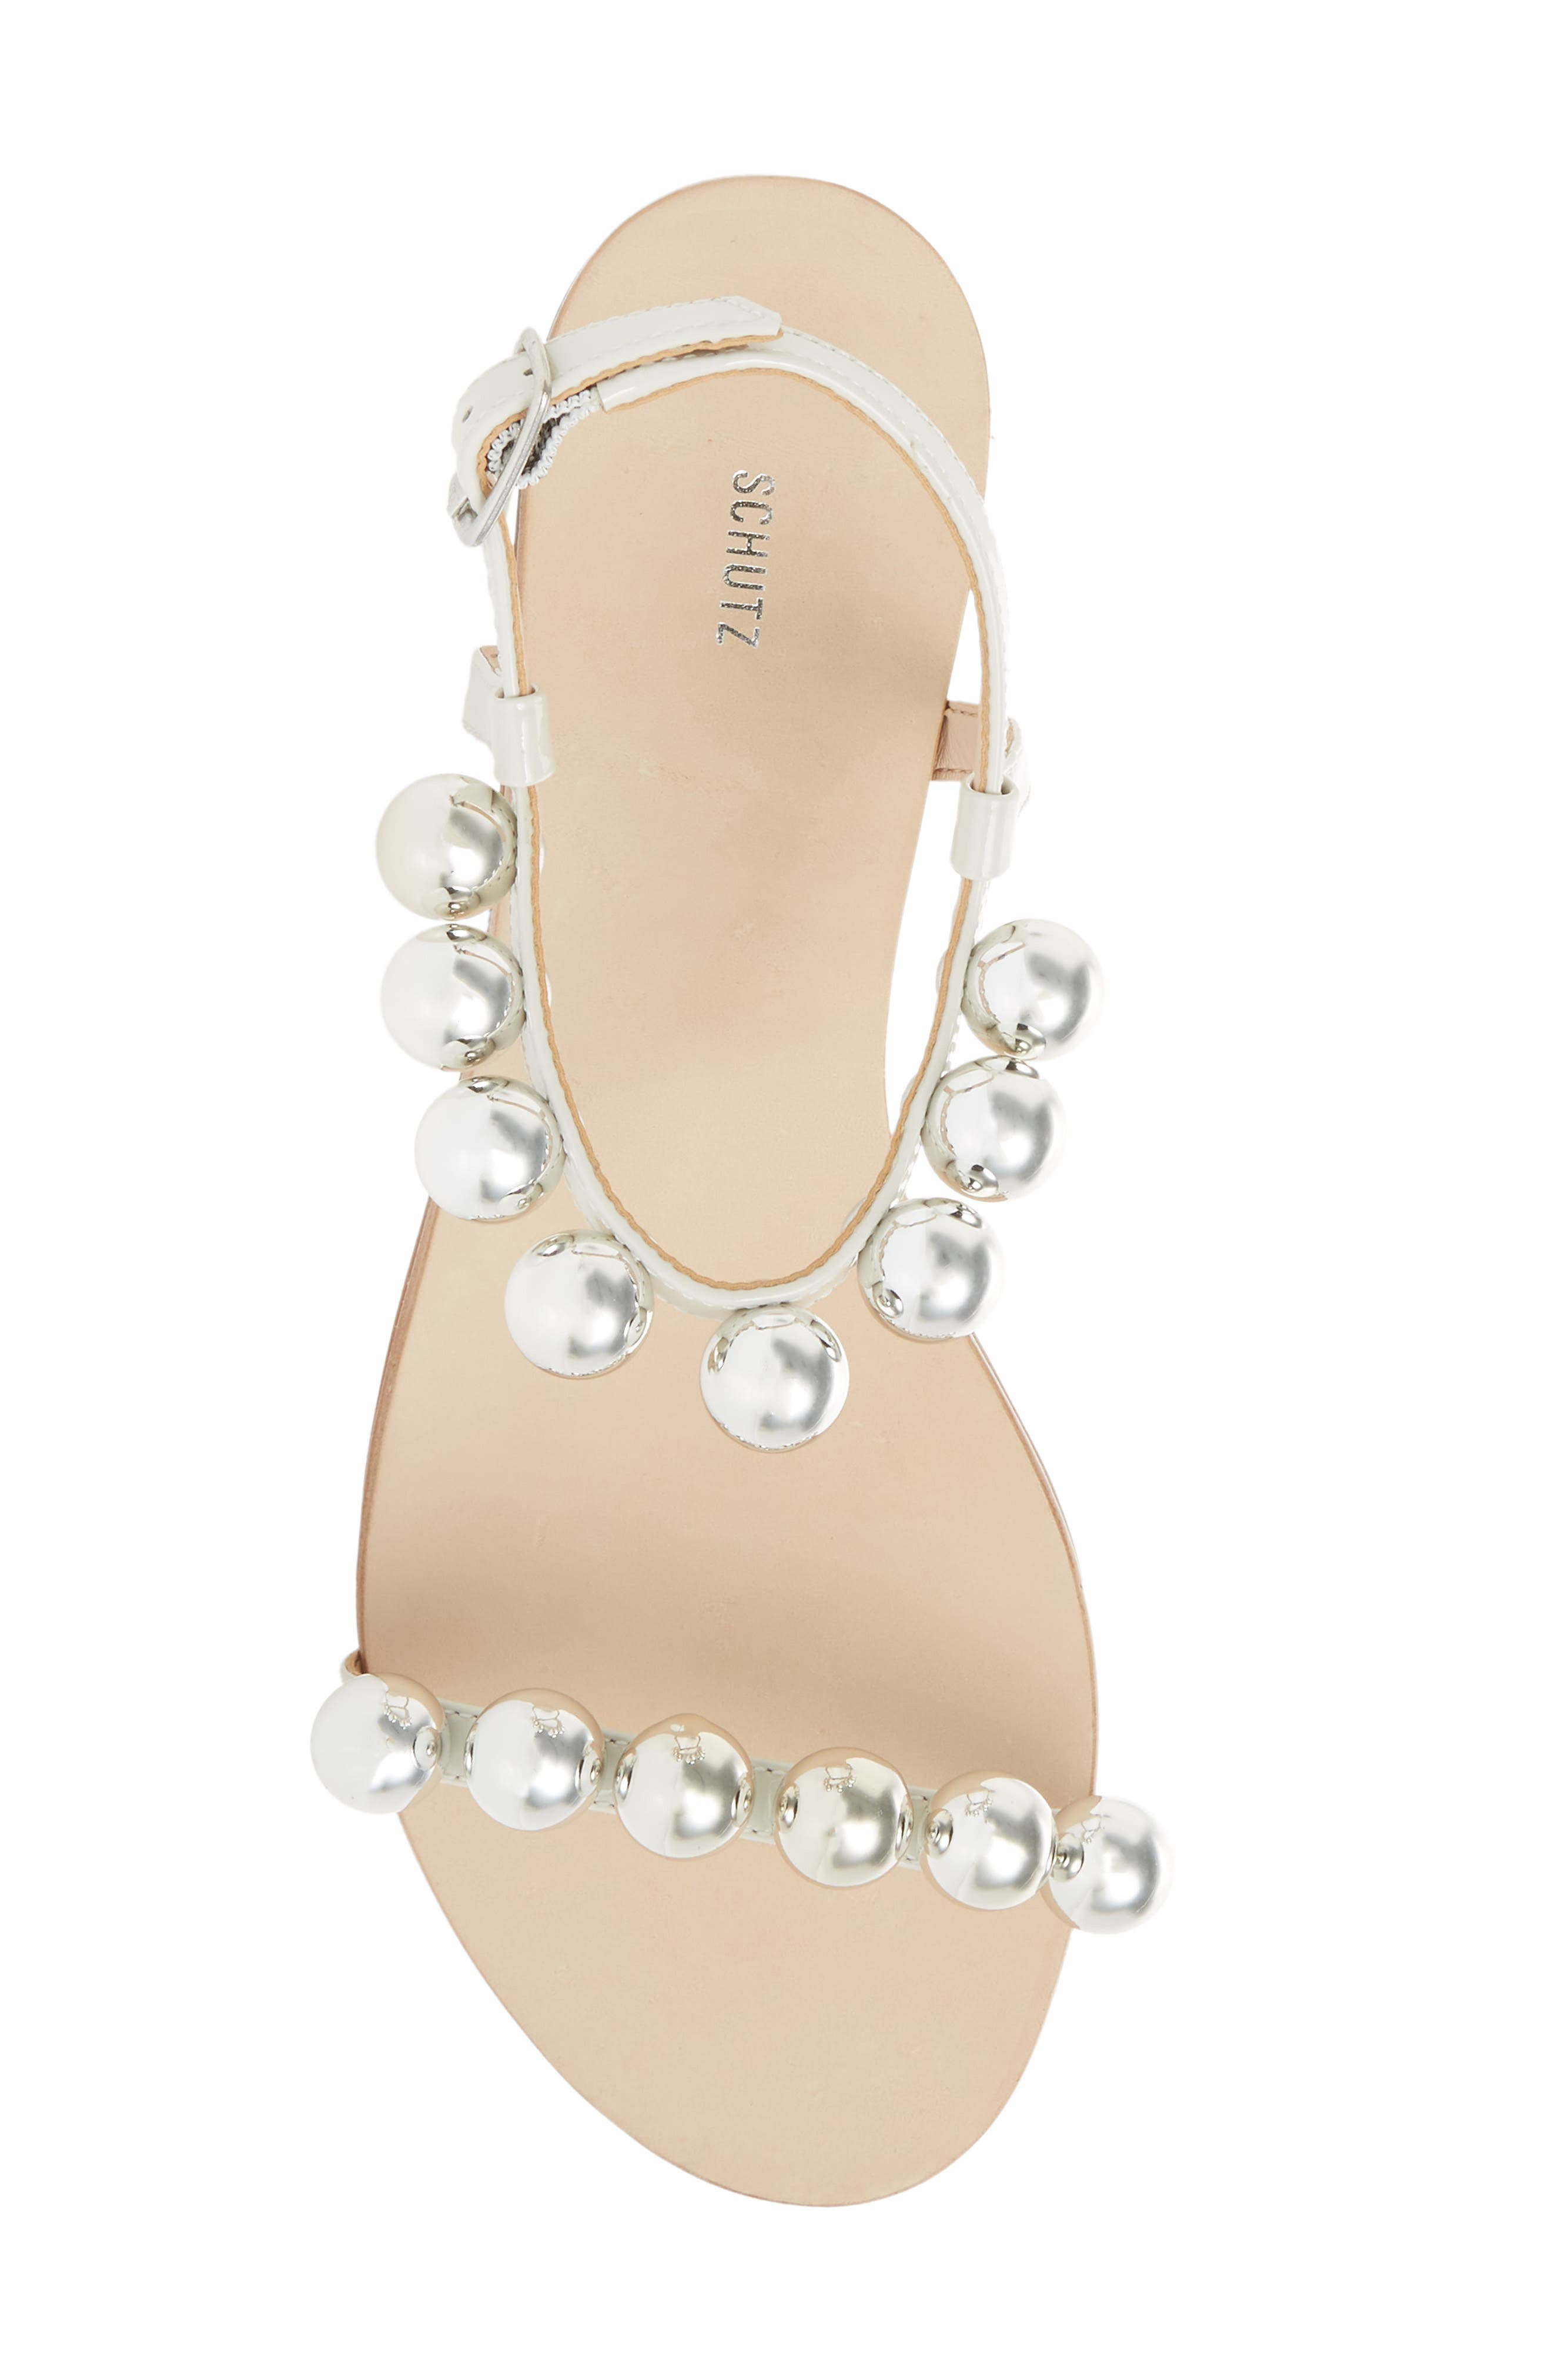 Hebe Ankle Strap Sandal,                             Alternate thumbnail 5, color,                             PEARL LEATHER